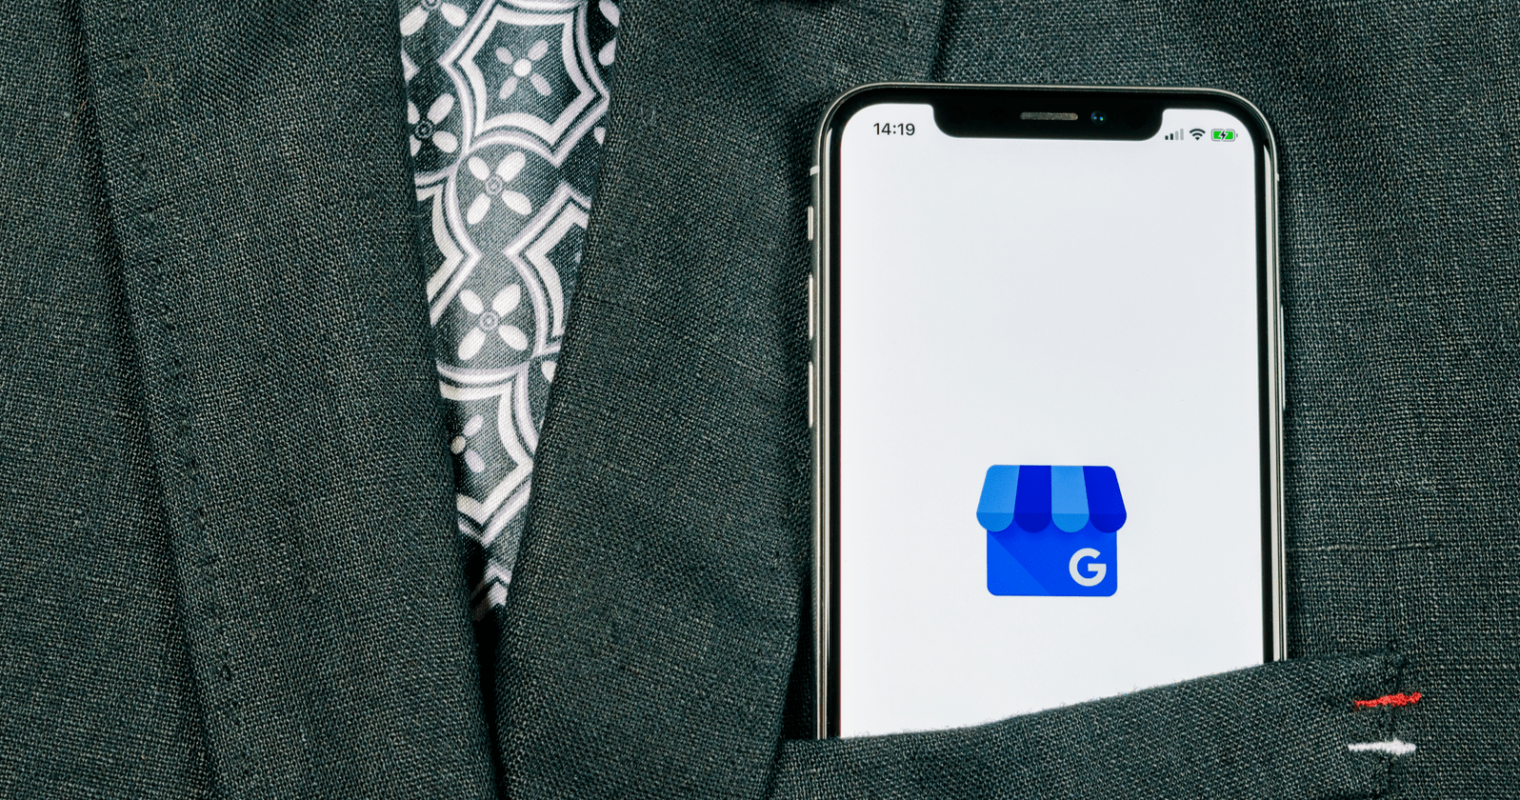 Google My Business Changes Post Limit to 1,500 Characters